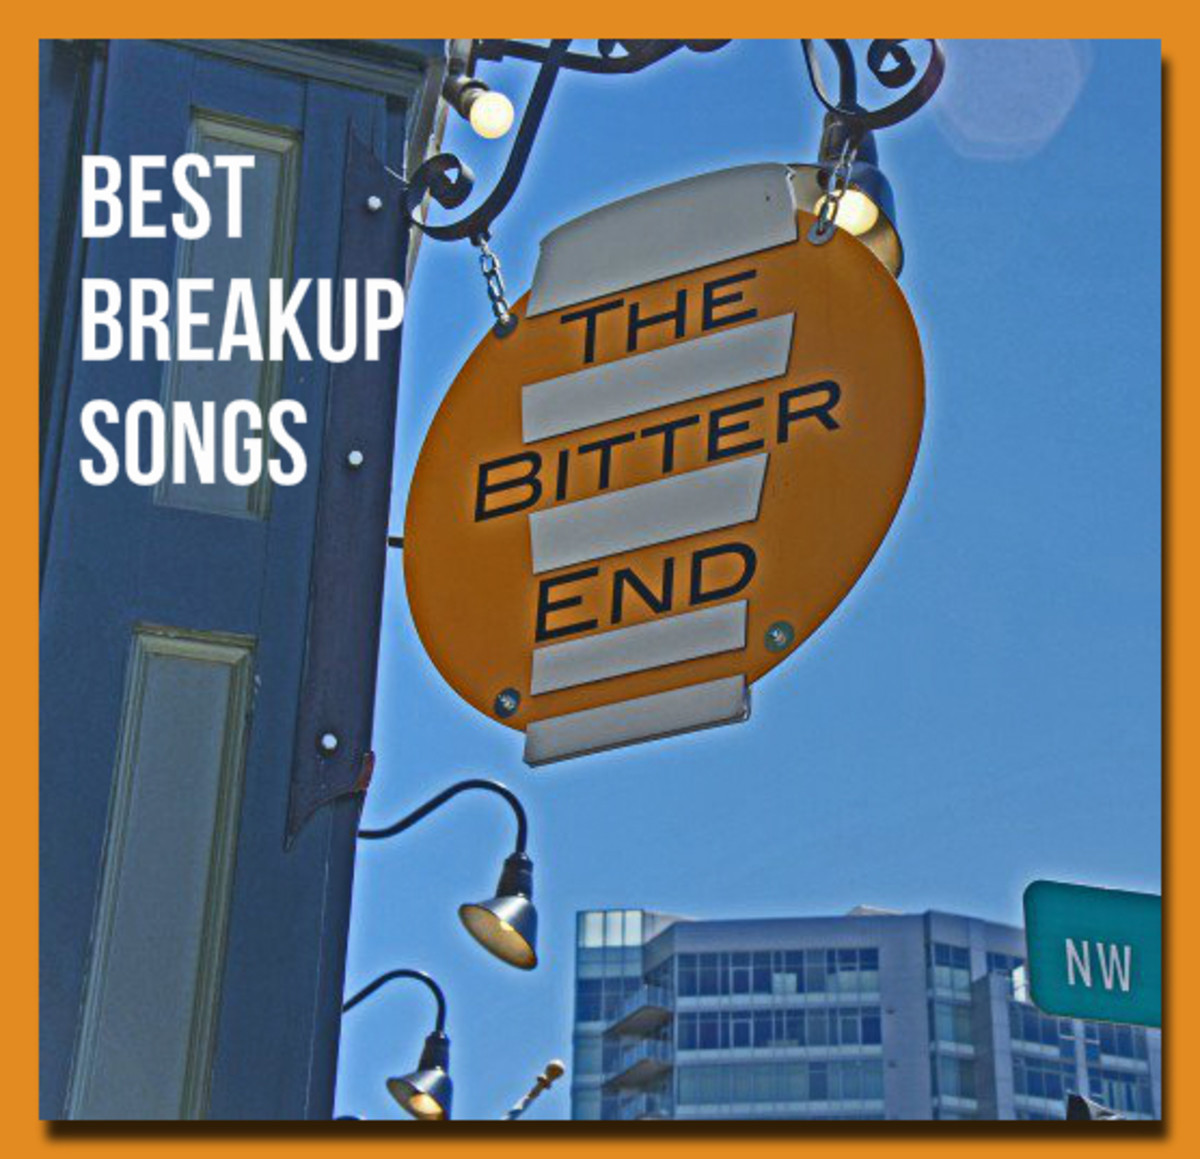 77 Best Break Up, Heartbreak and Divorce Songs